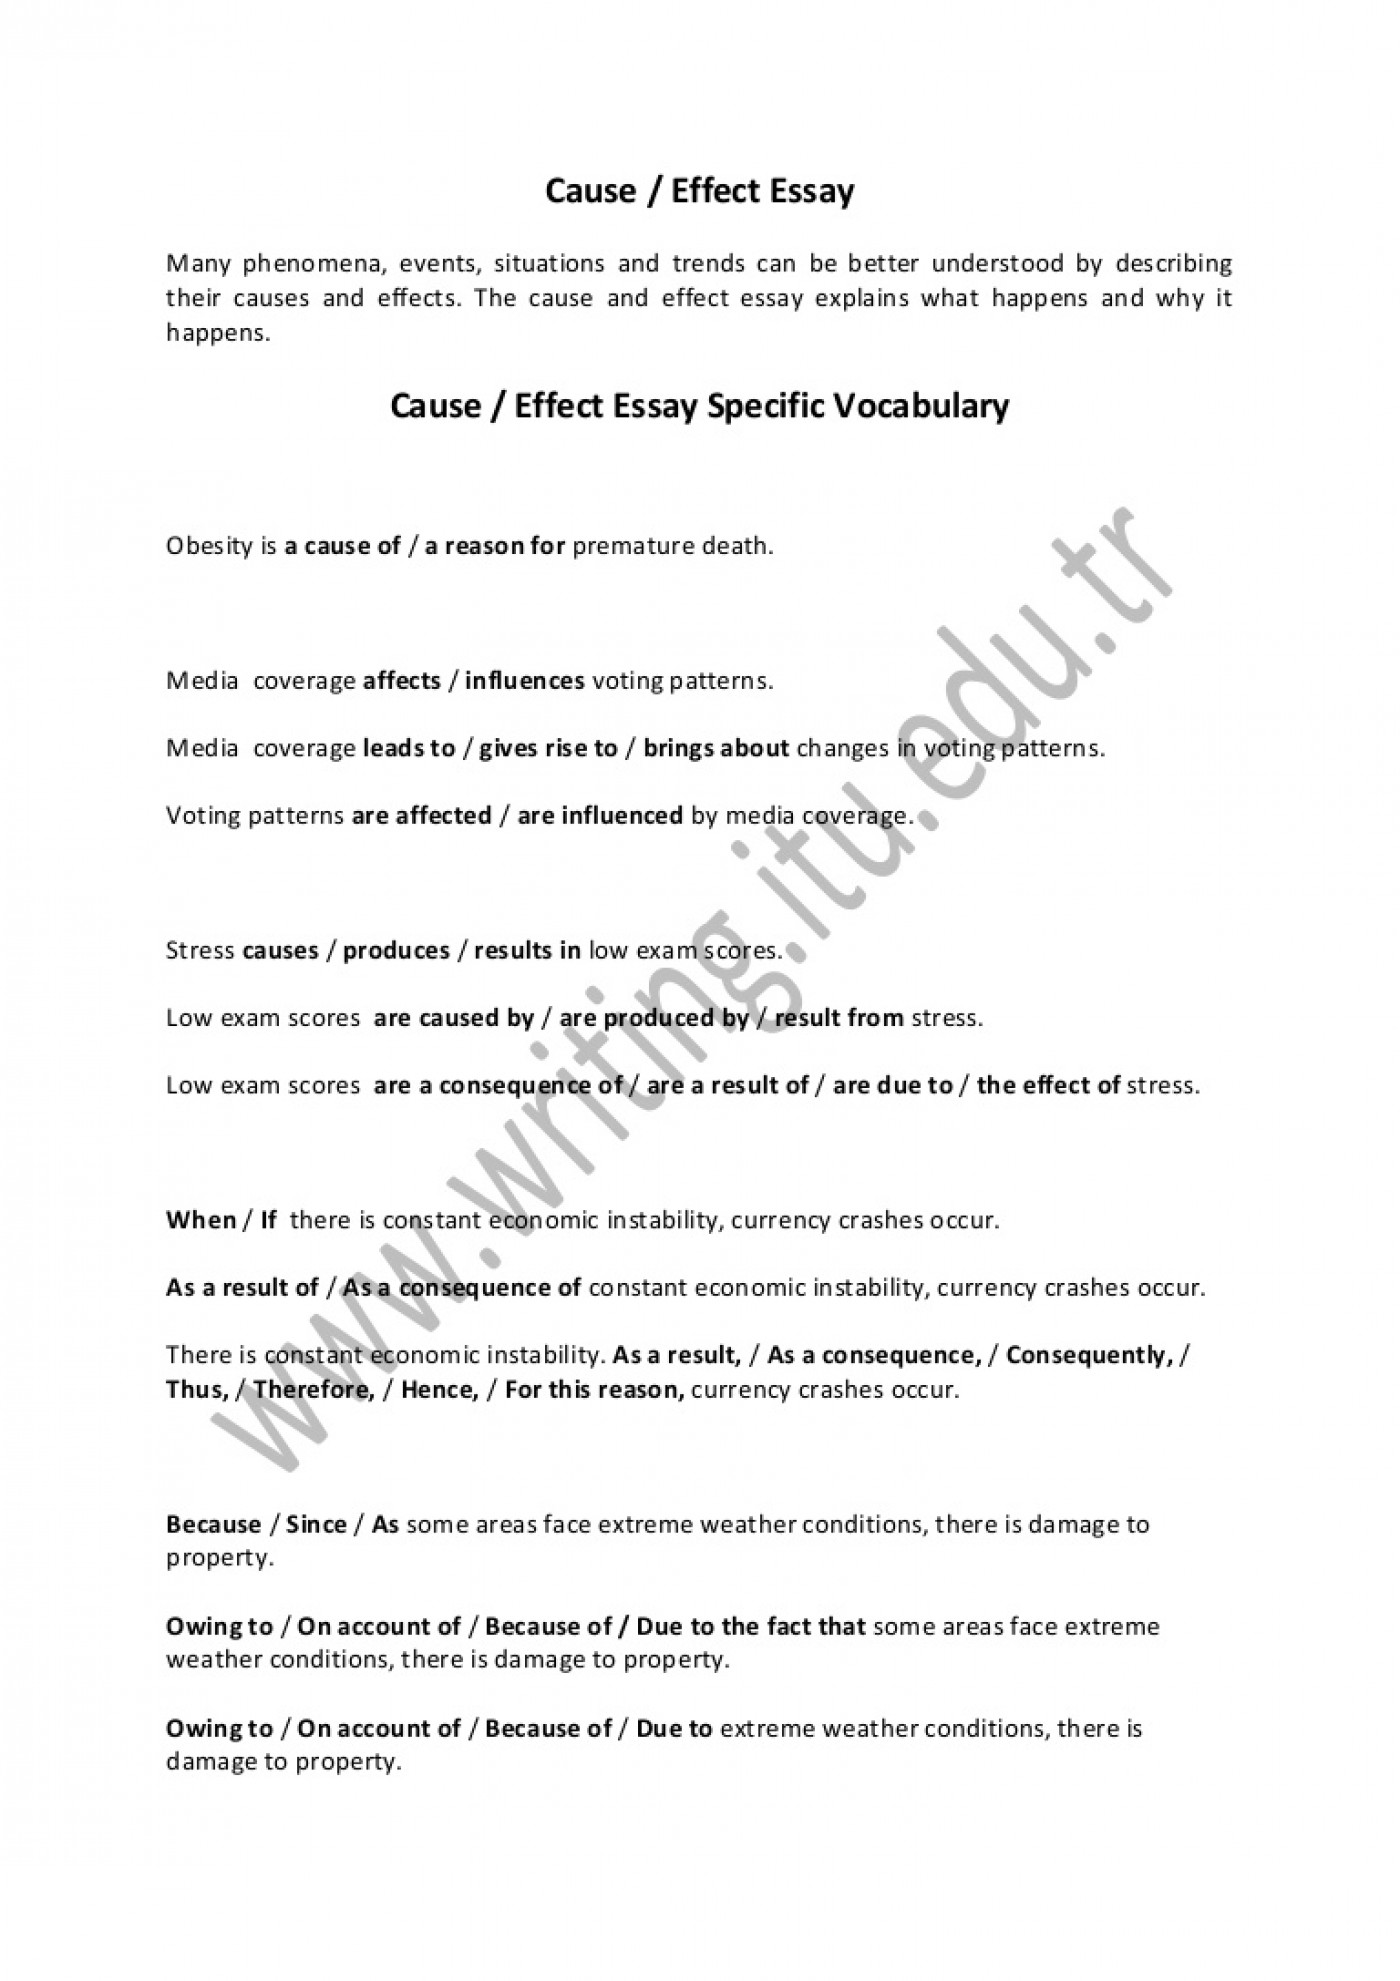 019 Essay Example Causeandeffectessay Thumbnail Cause And Effect Amazing Examples On Stress 4th Grade 1400